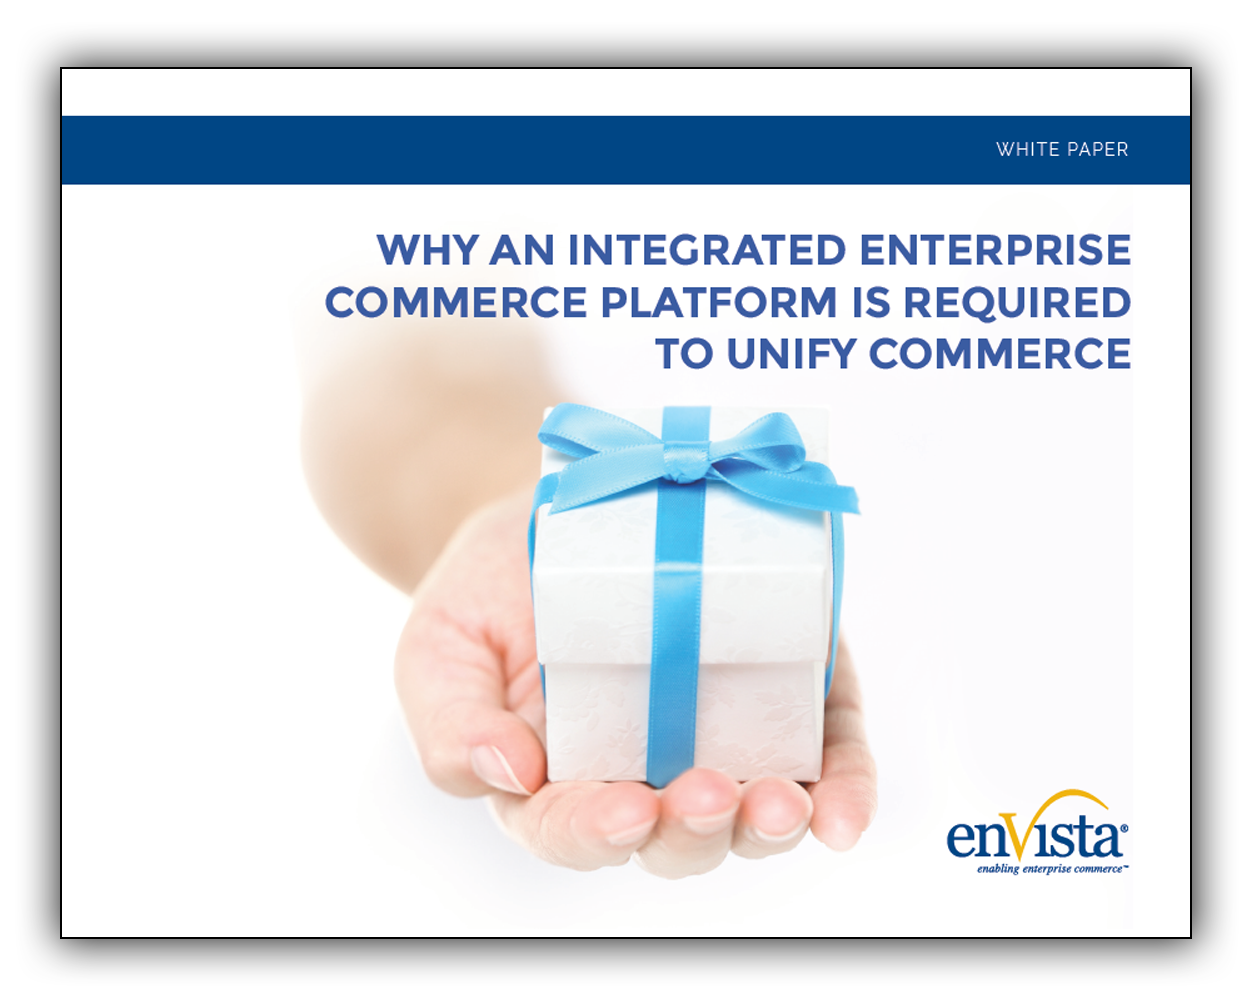 Image_why-an-integrated-enterprise-commerce-platform-is-required-to-unify-commerce-1.png